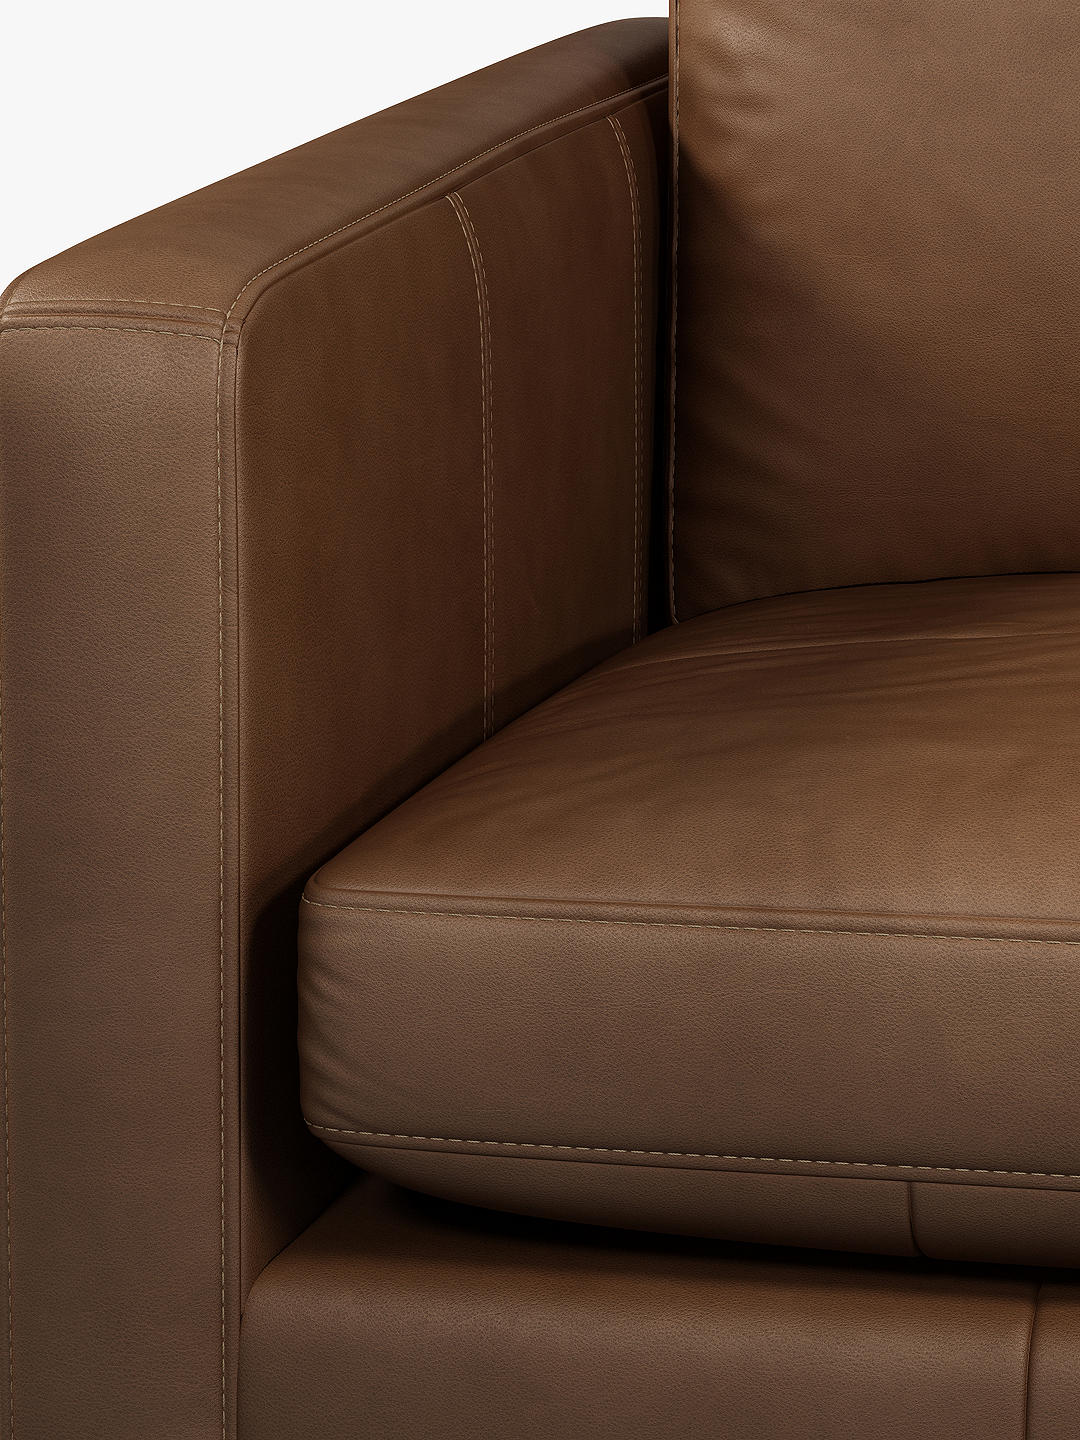 Buy John Lewis & Partners Bailey Large 3 Seather Leather Sofa, Dark Leg, Sellvagio Cognac Online at johnlewis.com